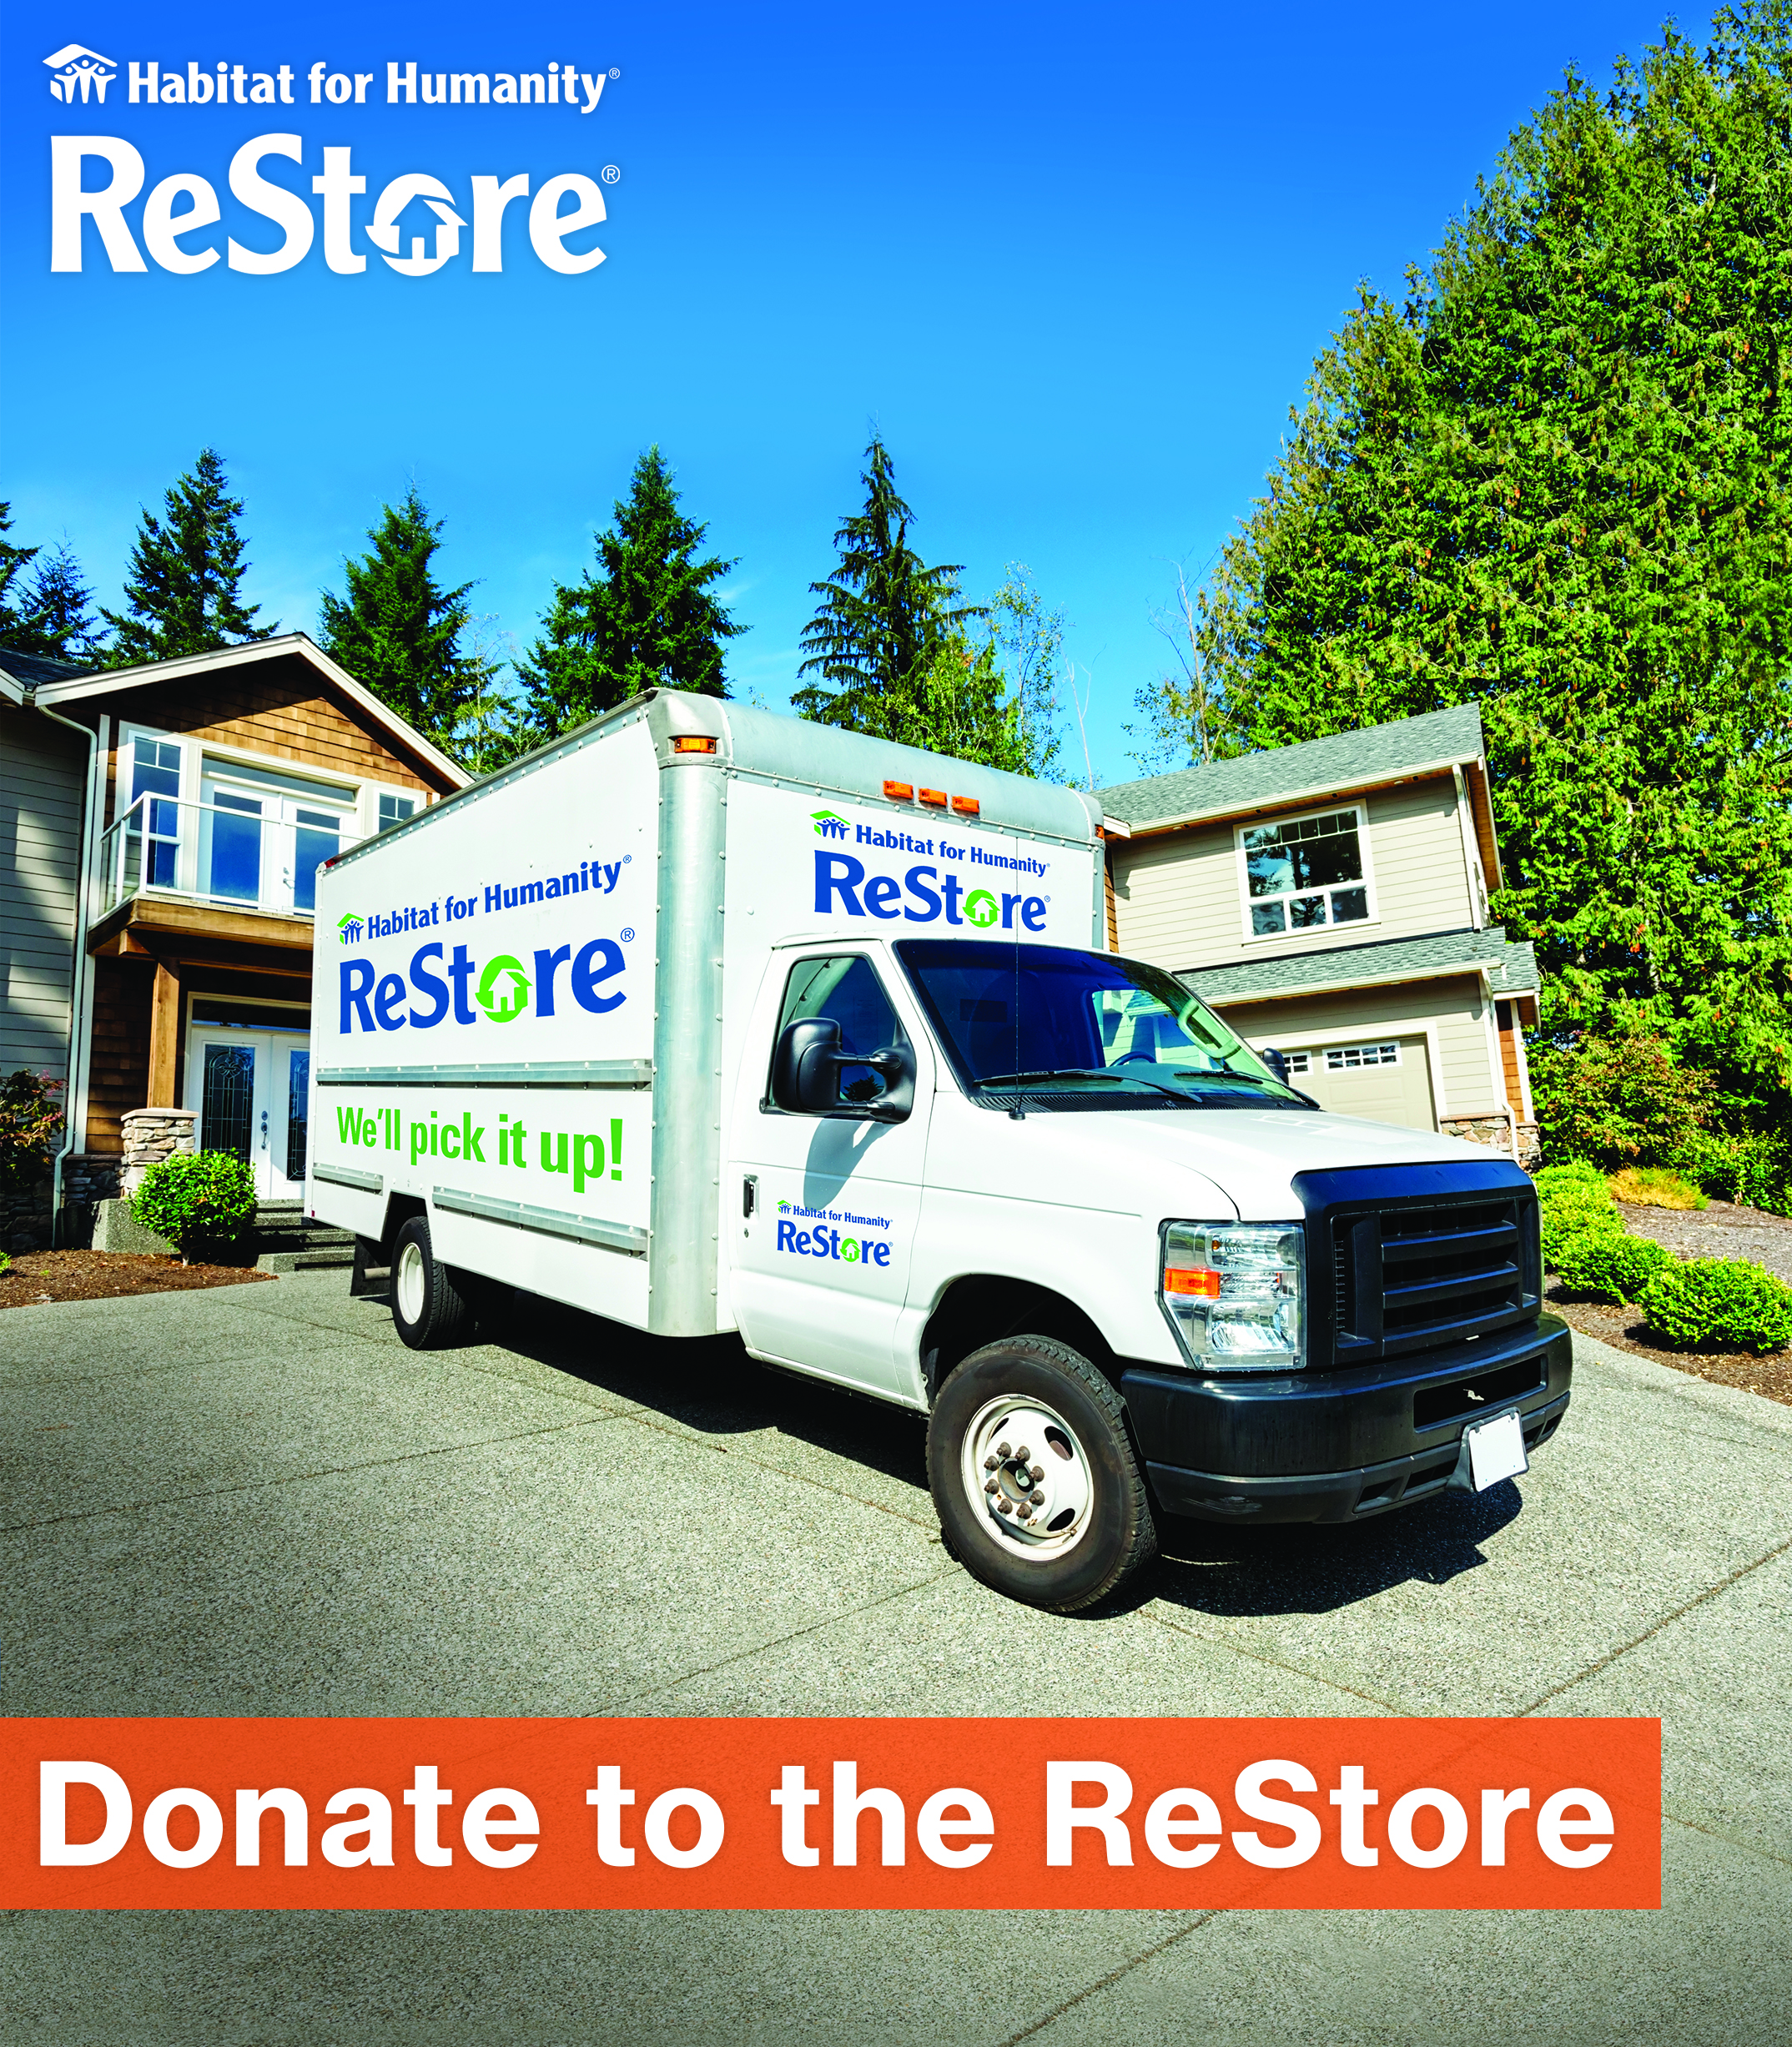 ReStore Website Home Page - Donate.jpg